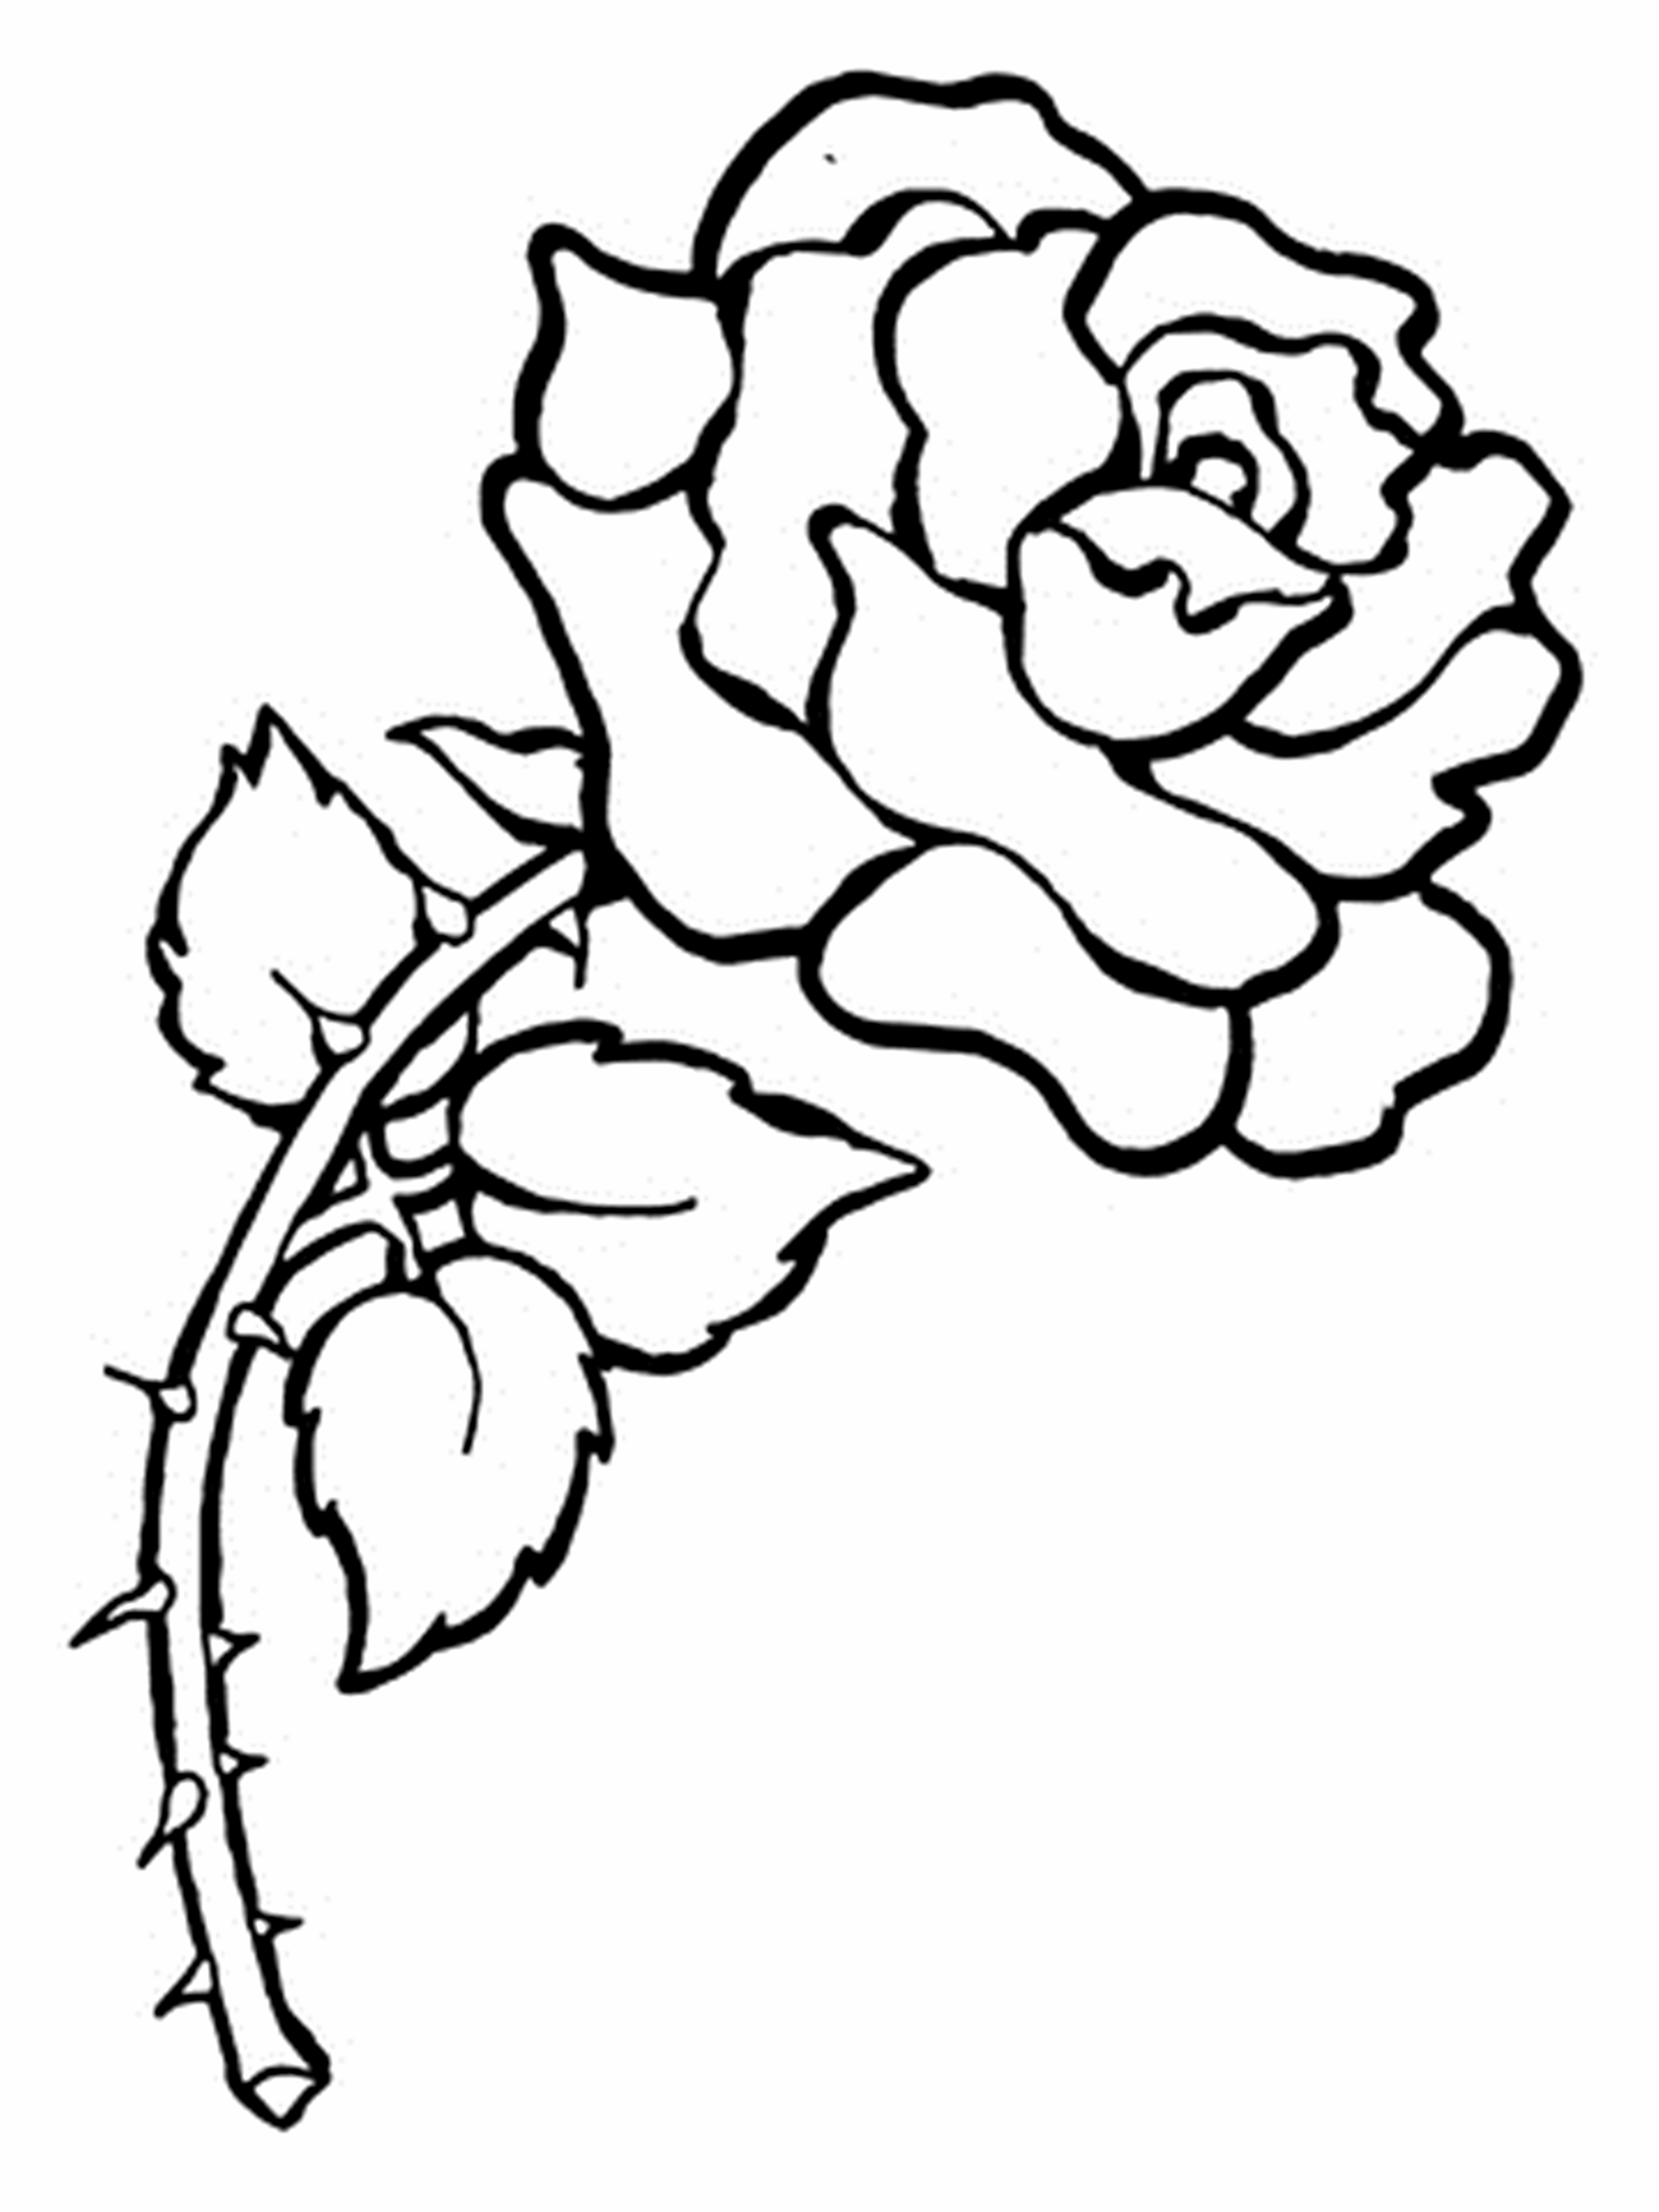 rose coloring sheet flower coloring pages free printable flower coloring pages for kids best rose coloring sheet flower coloring pages